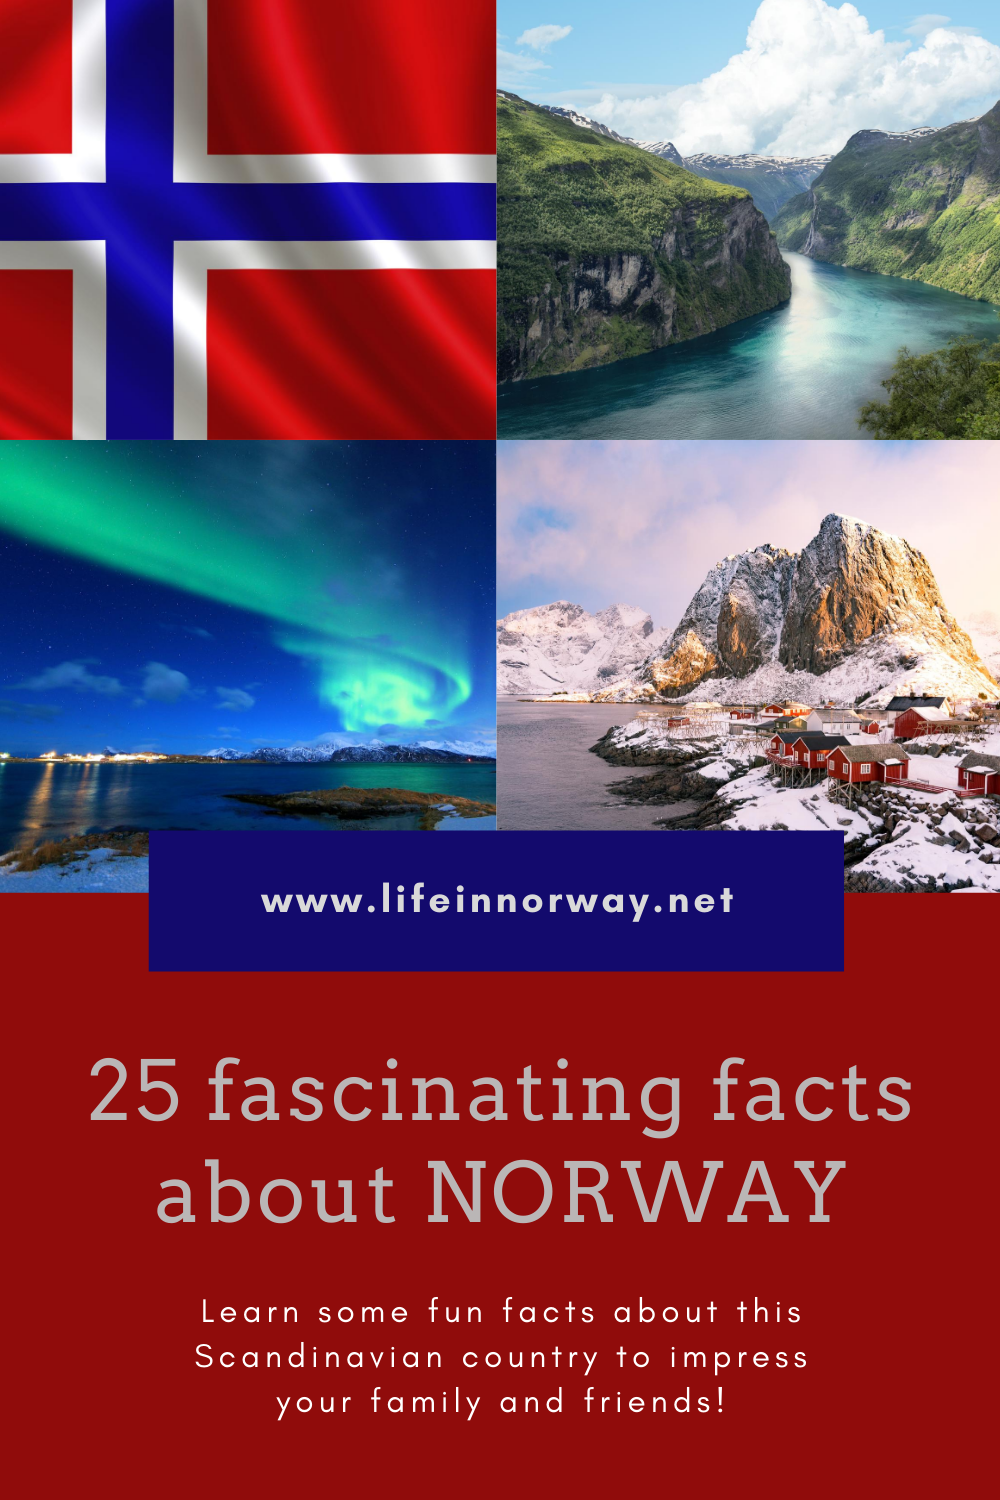 25 Fascinating Facts About Norway In 2020 Norway Facts Norway Norway Travel